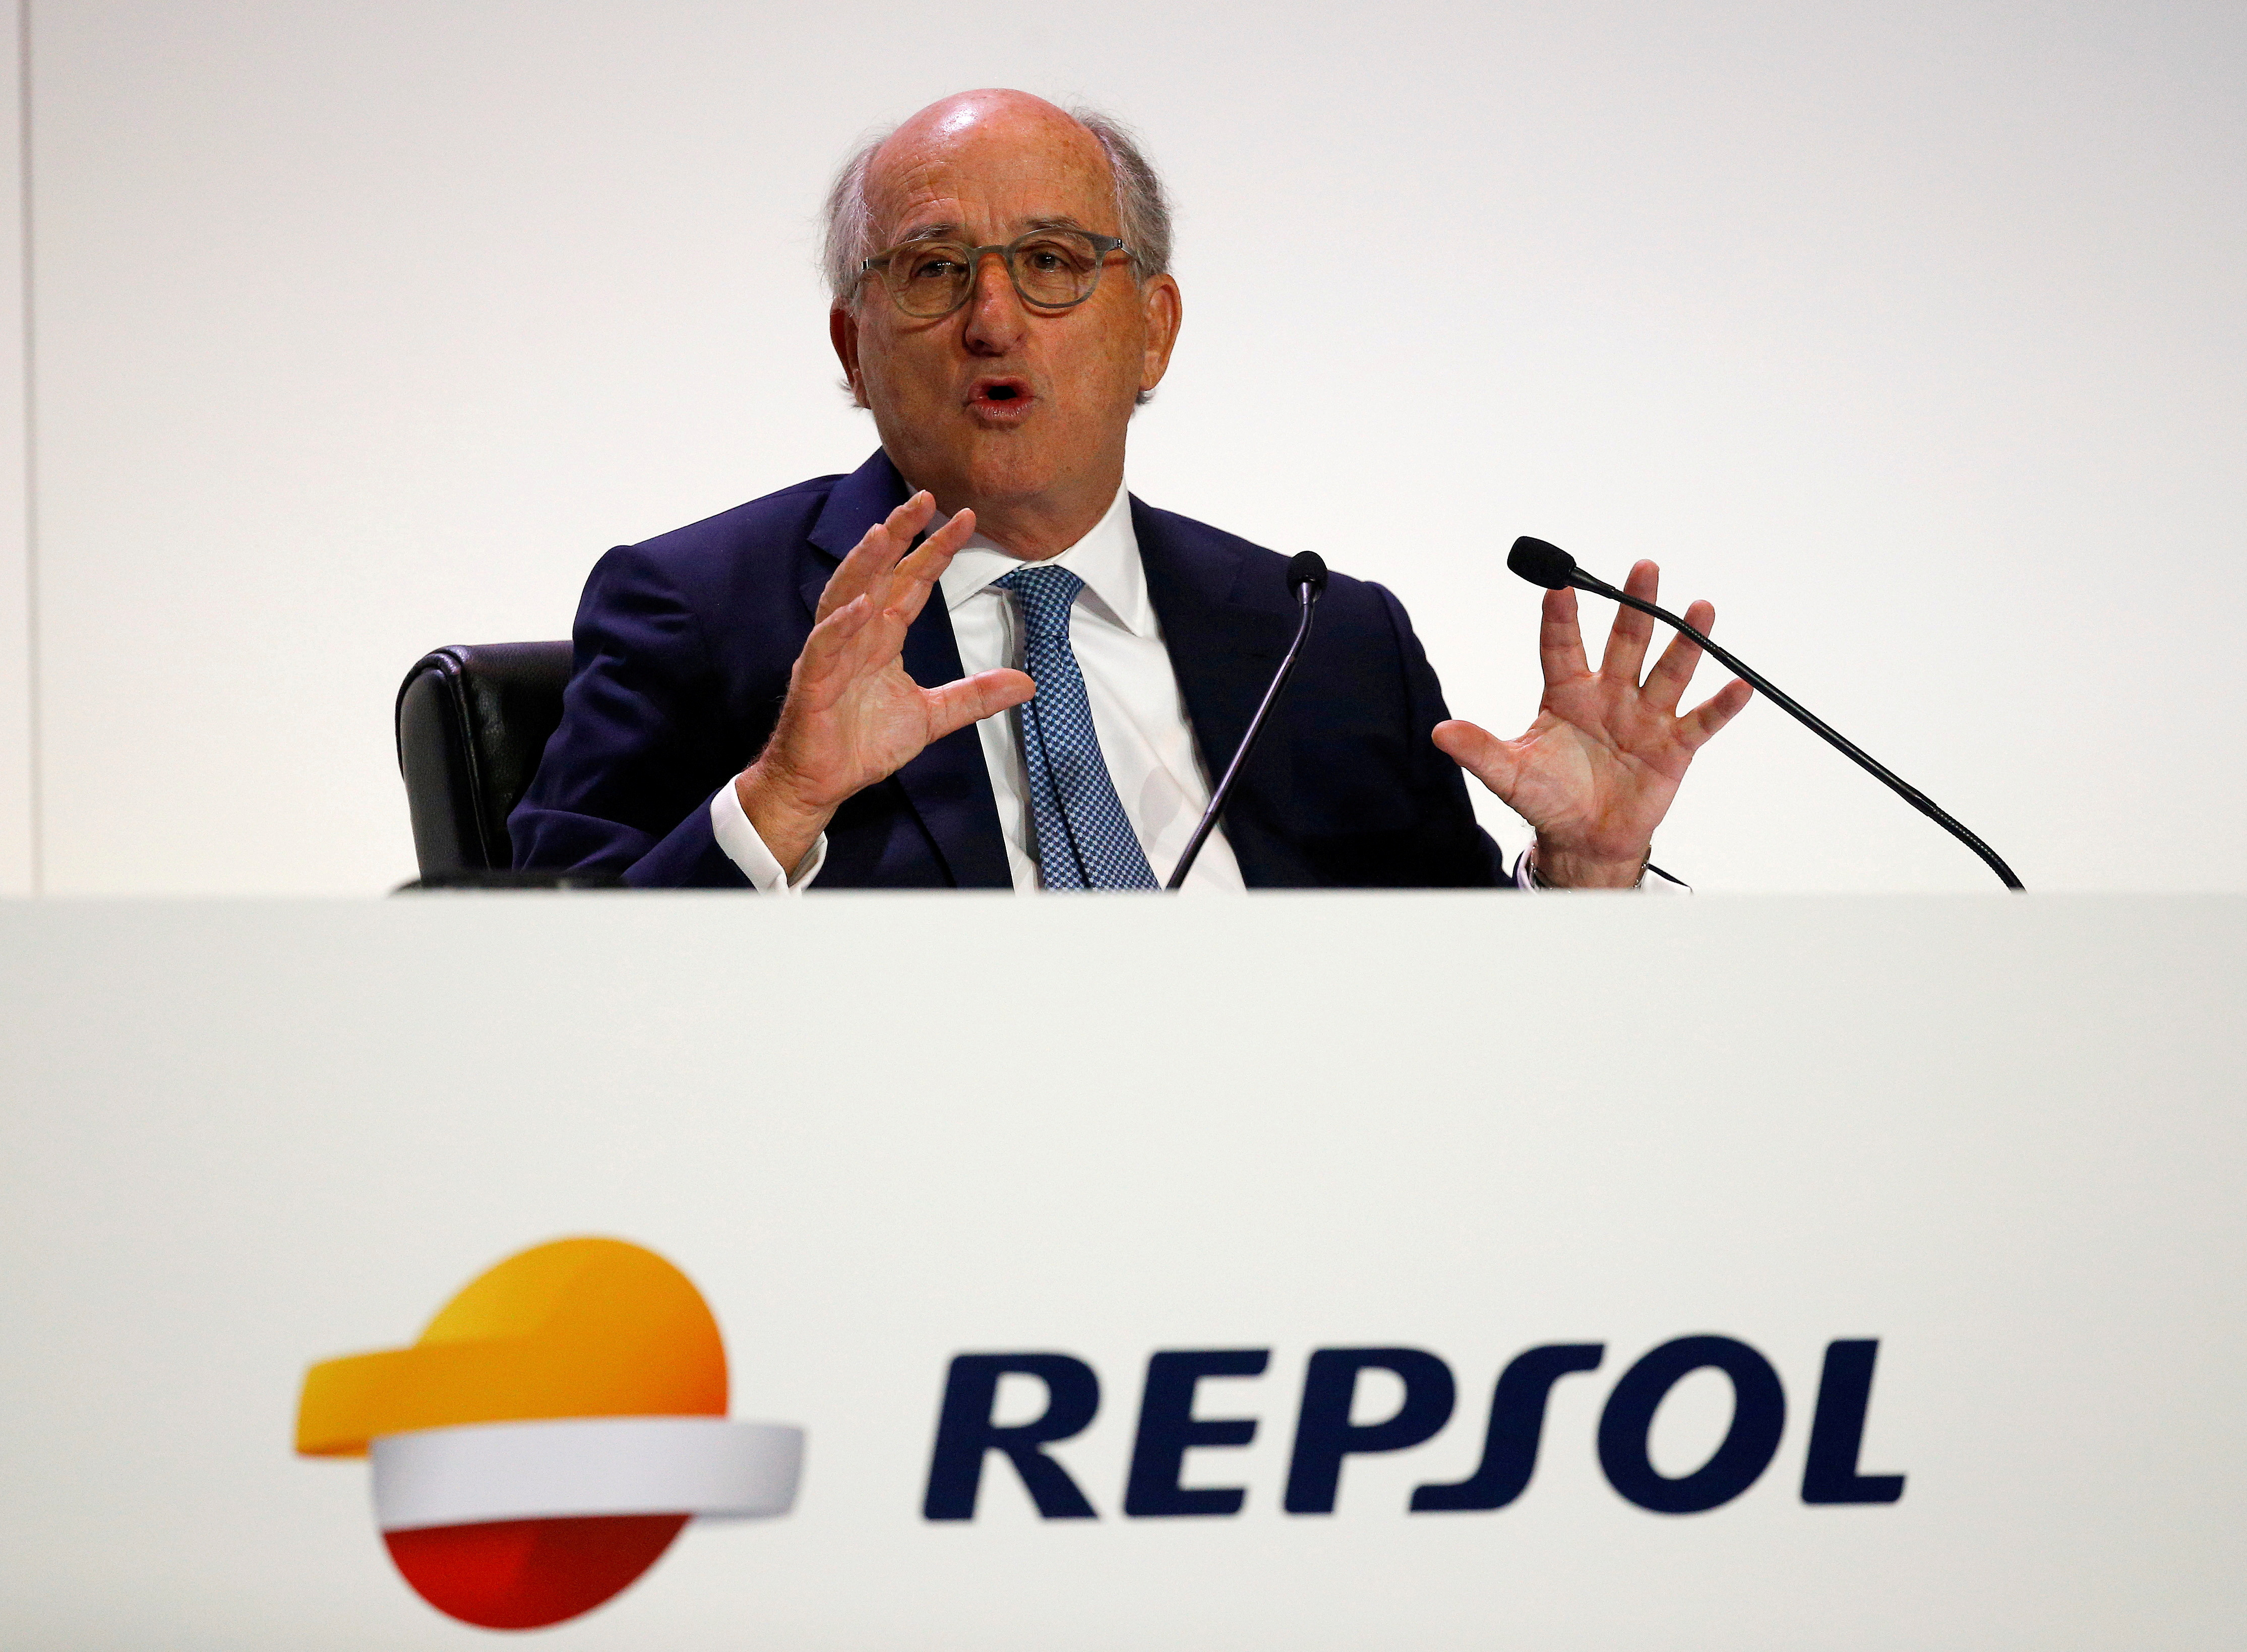 Repsol Chairman Antonio Brufau delivers a speech during the company's annual shareholders meeting in Madrid, Spain, May 19, 2017. REUTERS/Paul Hanna/File Photo